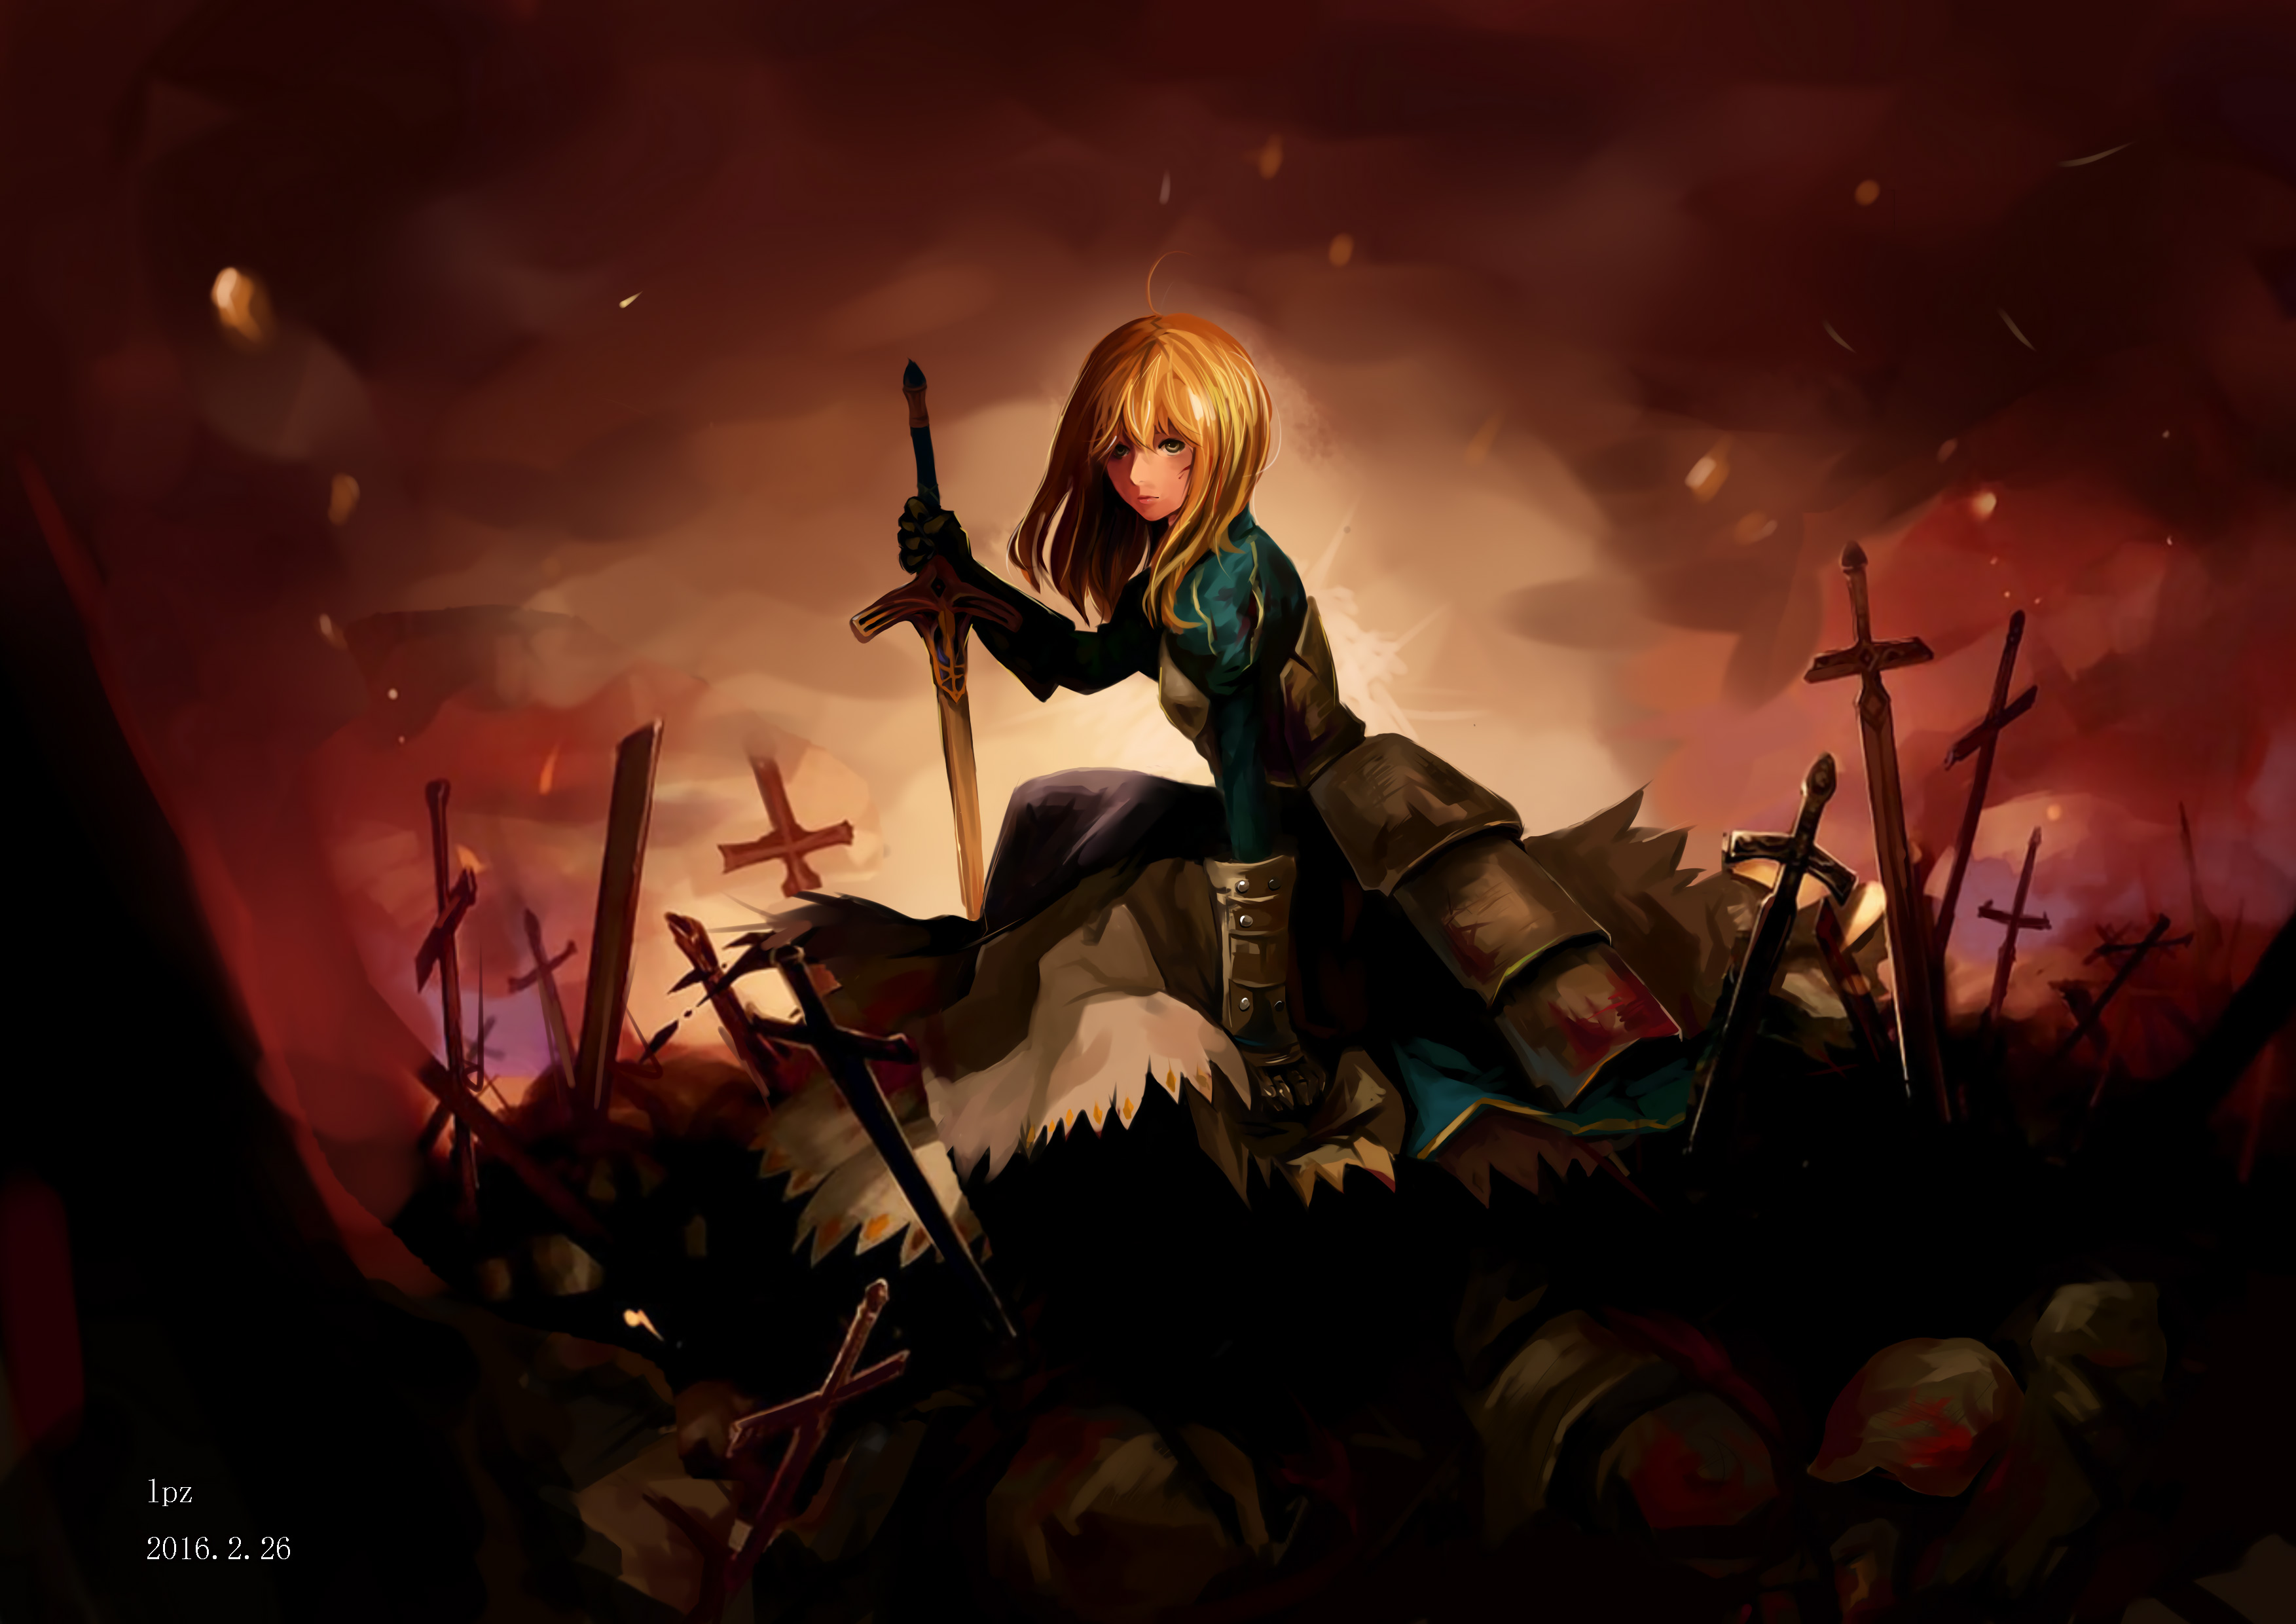 Saber Fate Stay Night Hd Anime 4k Wallpapers Images